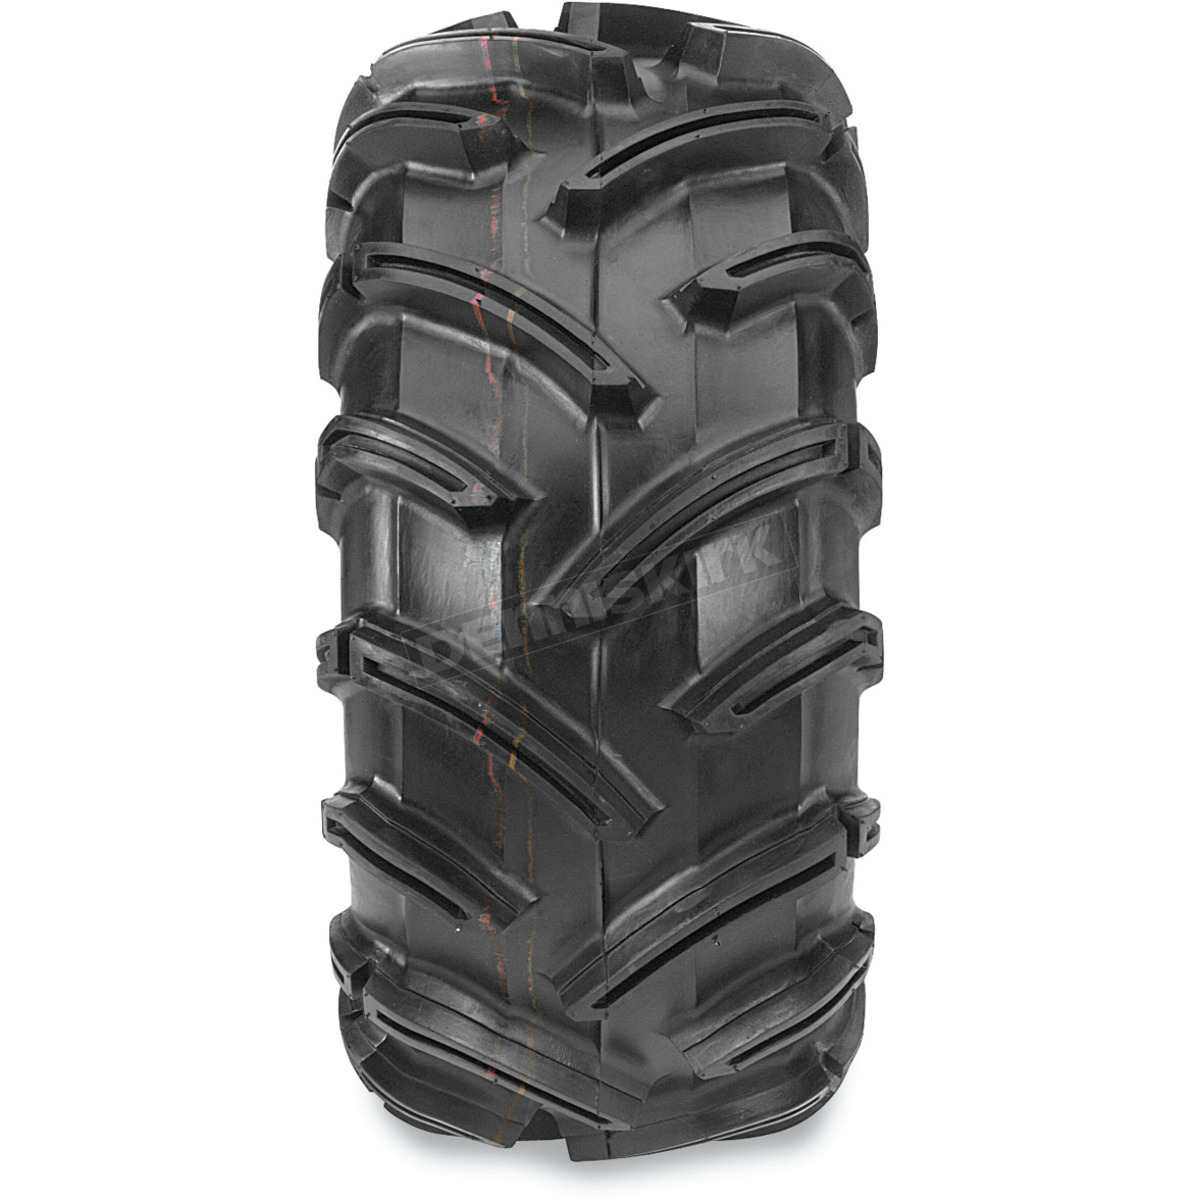 choices more maxxis tires atv utv see more from maxxis see more tires ...